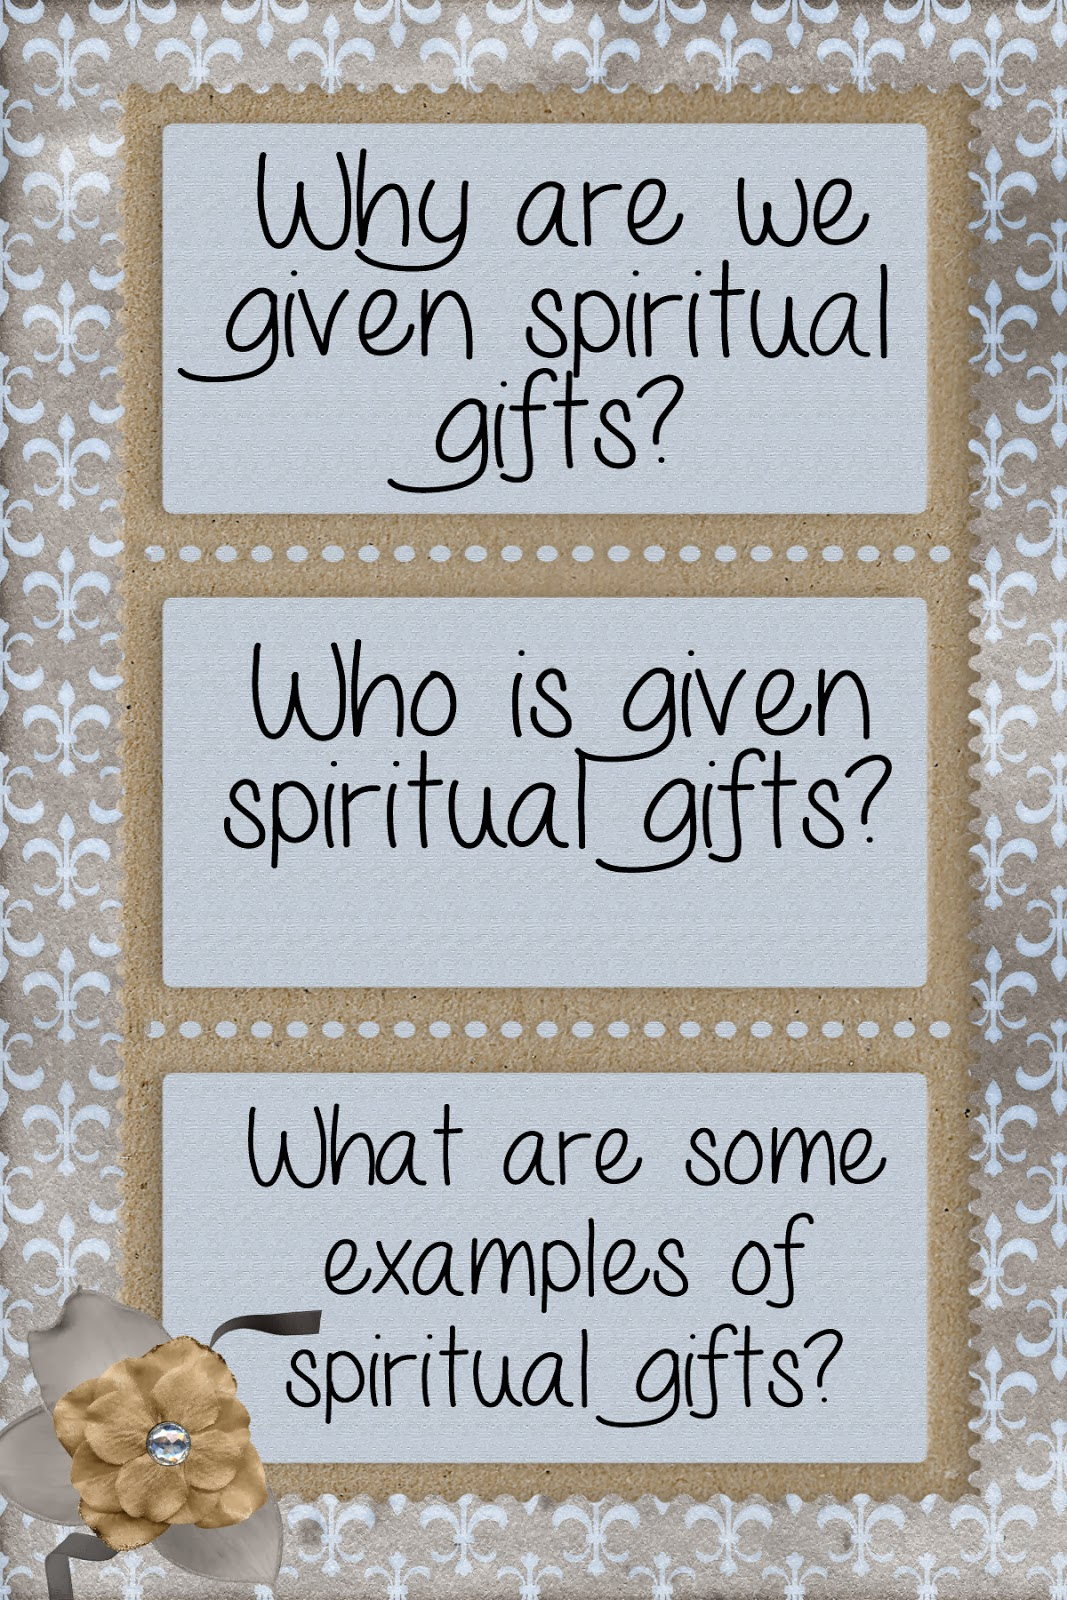 spiritual gifts lds quotes quotesgram. Black Bedroom Furniture Sets. Home Design Ideas